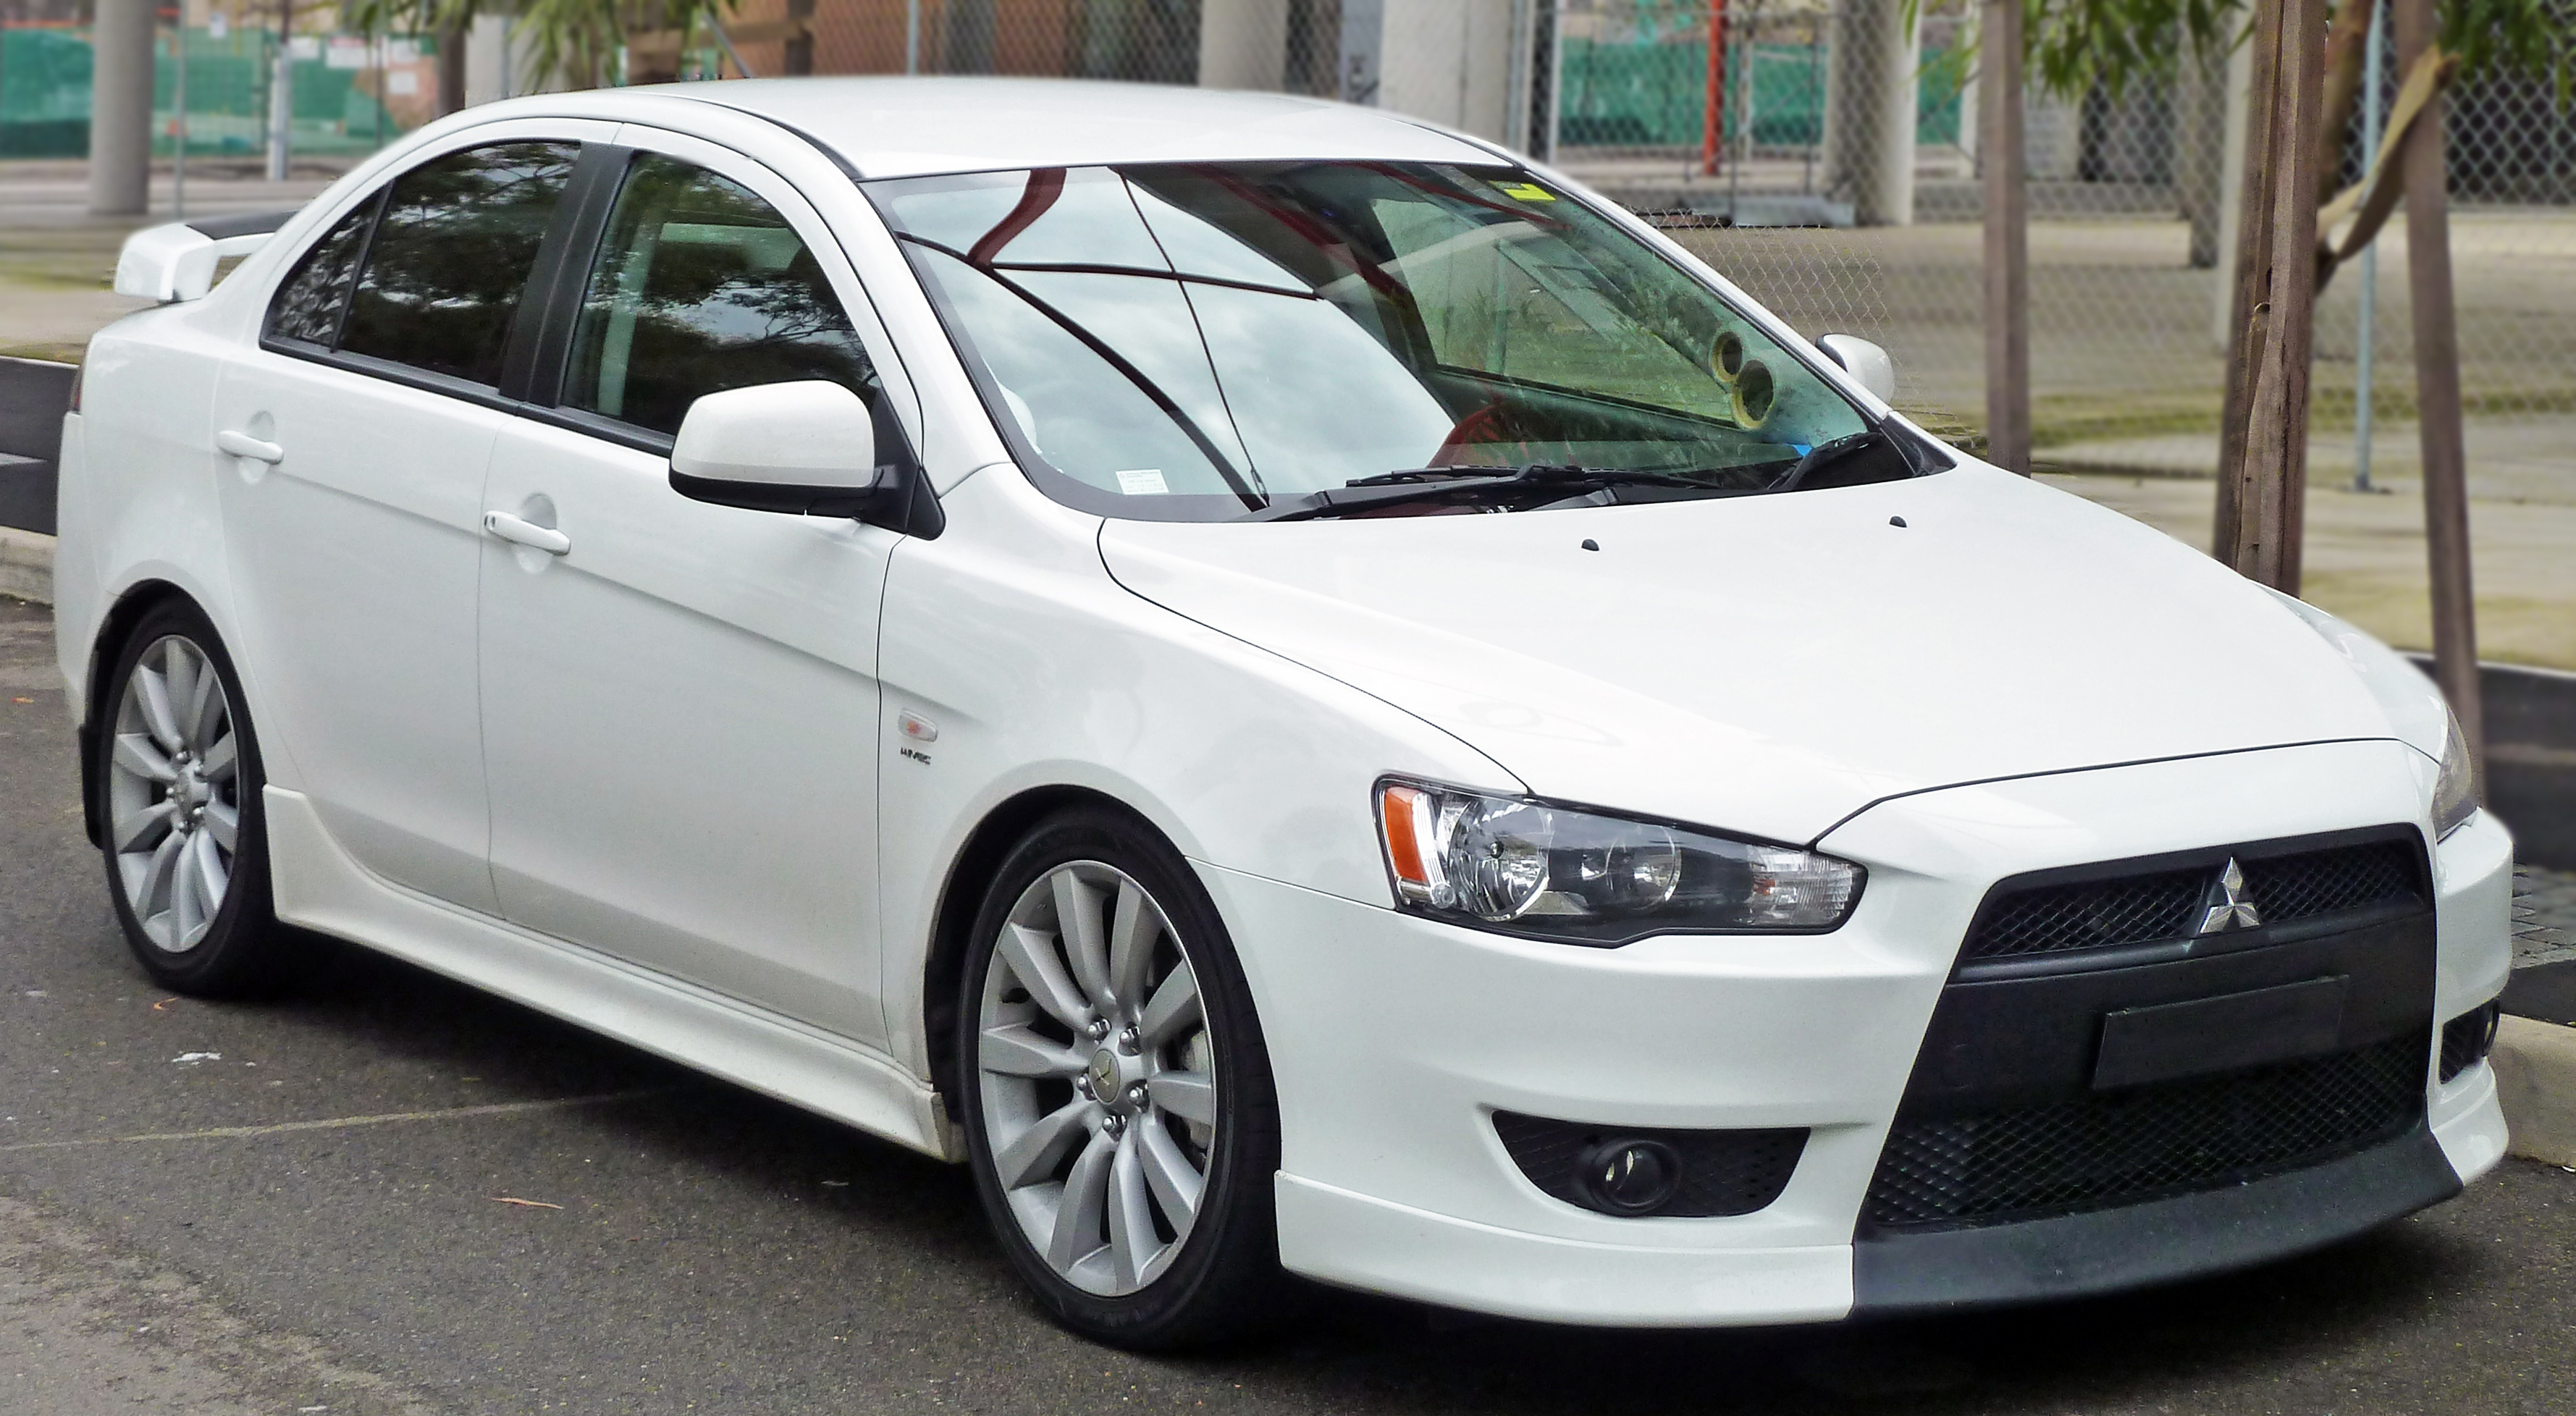 What Are The Most Reliable Used Cars We Have The Stats To Show You The Top 5